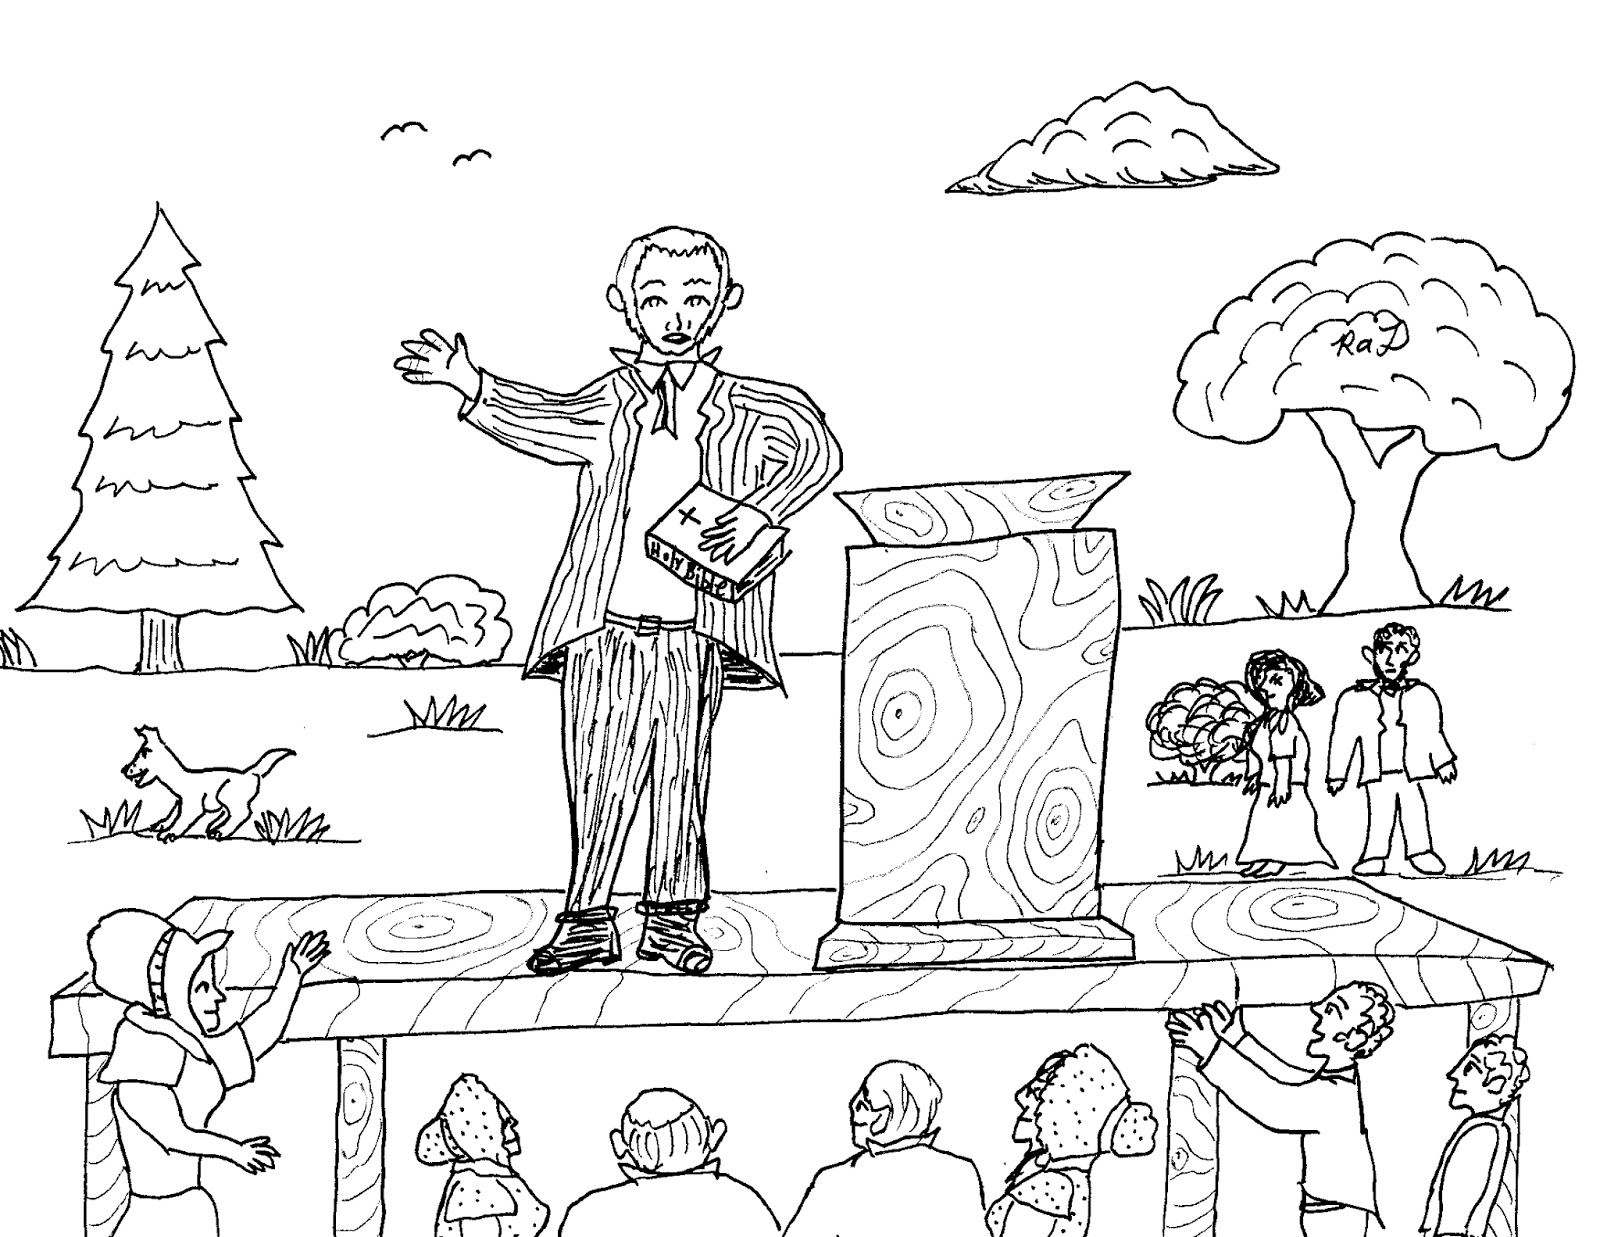 Robin S Great Coloring Pages Joseph Smith And Brigham Young And The Restoration Of Christ S Church